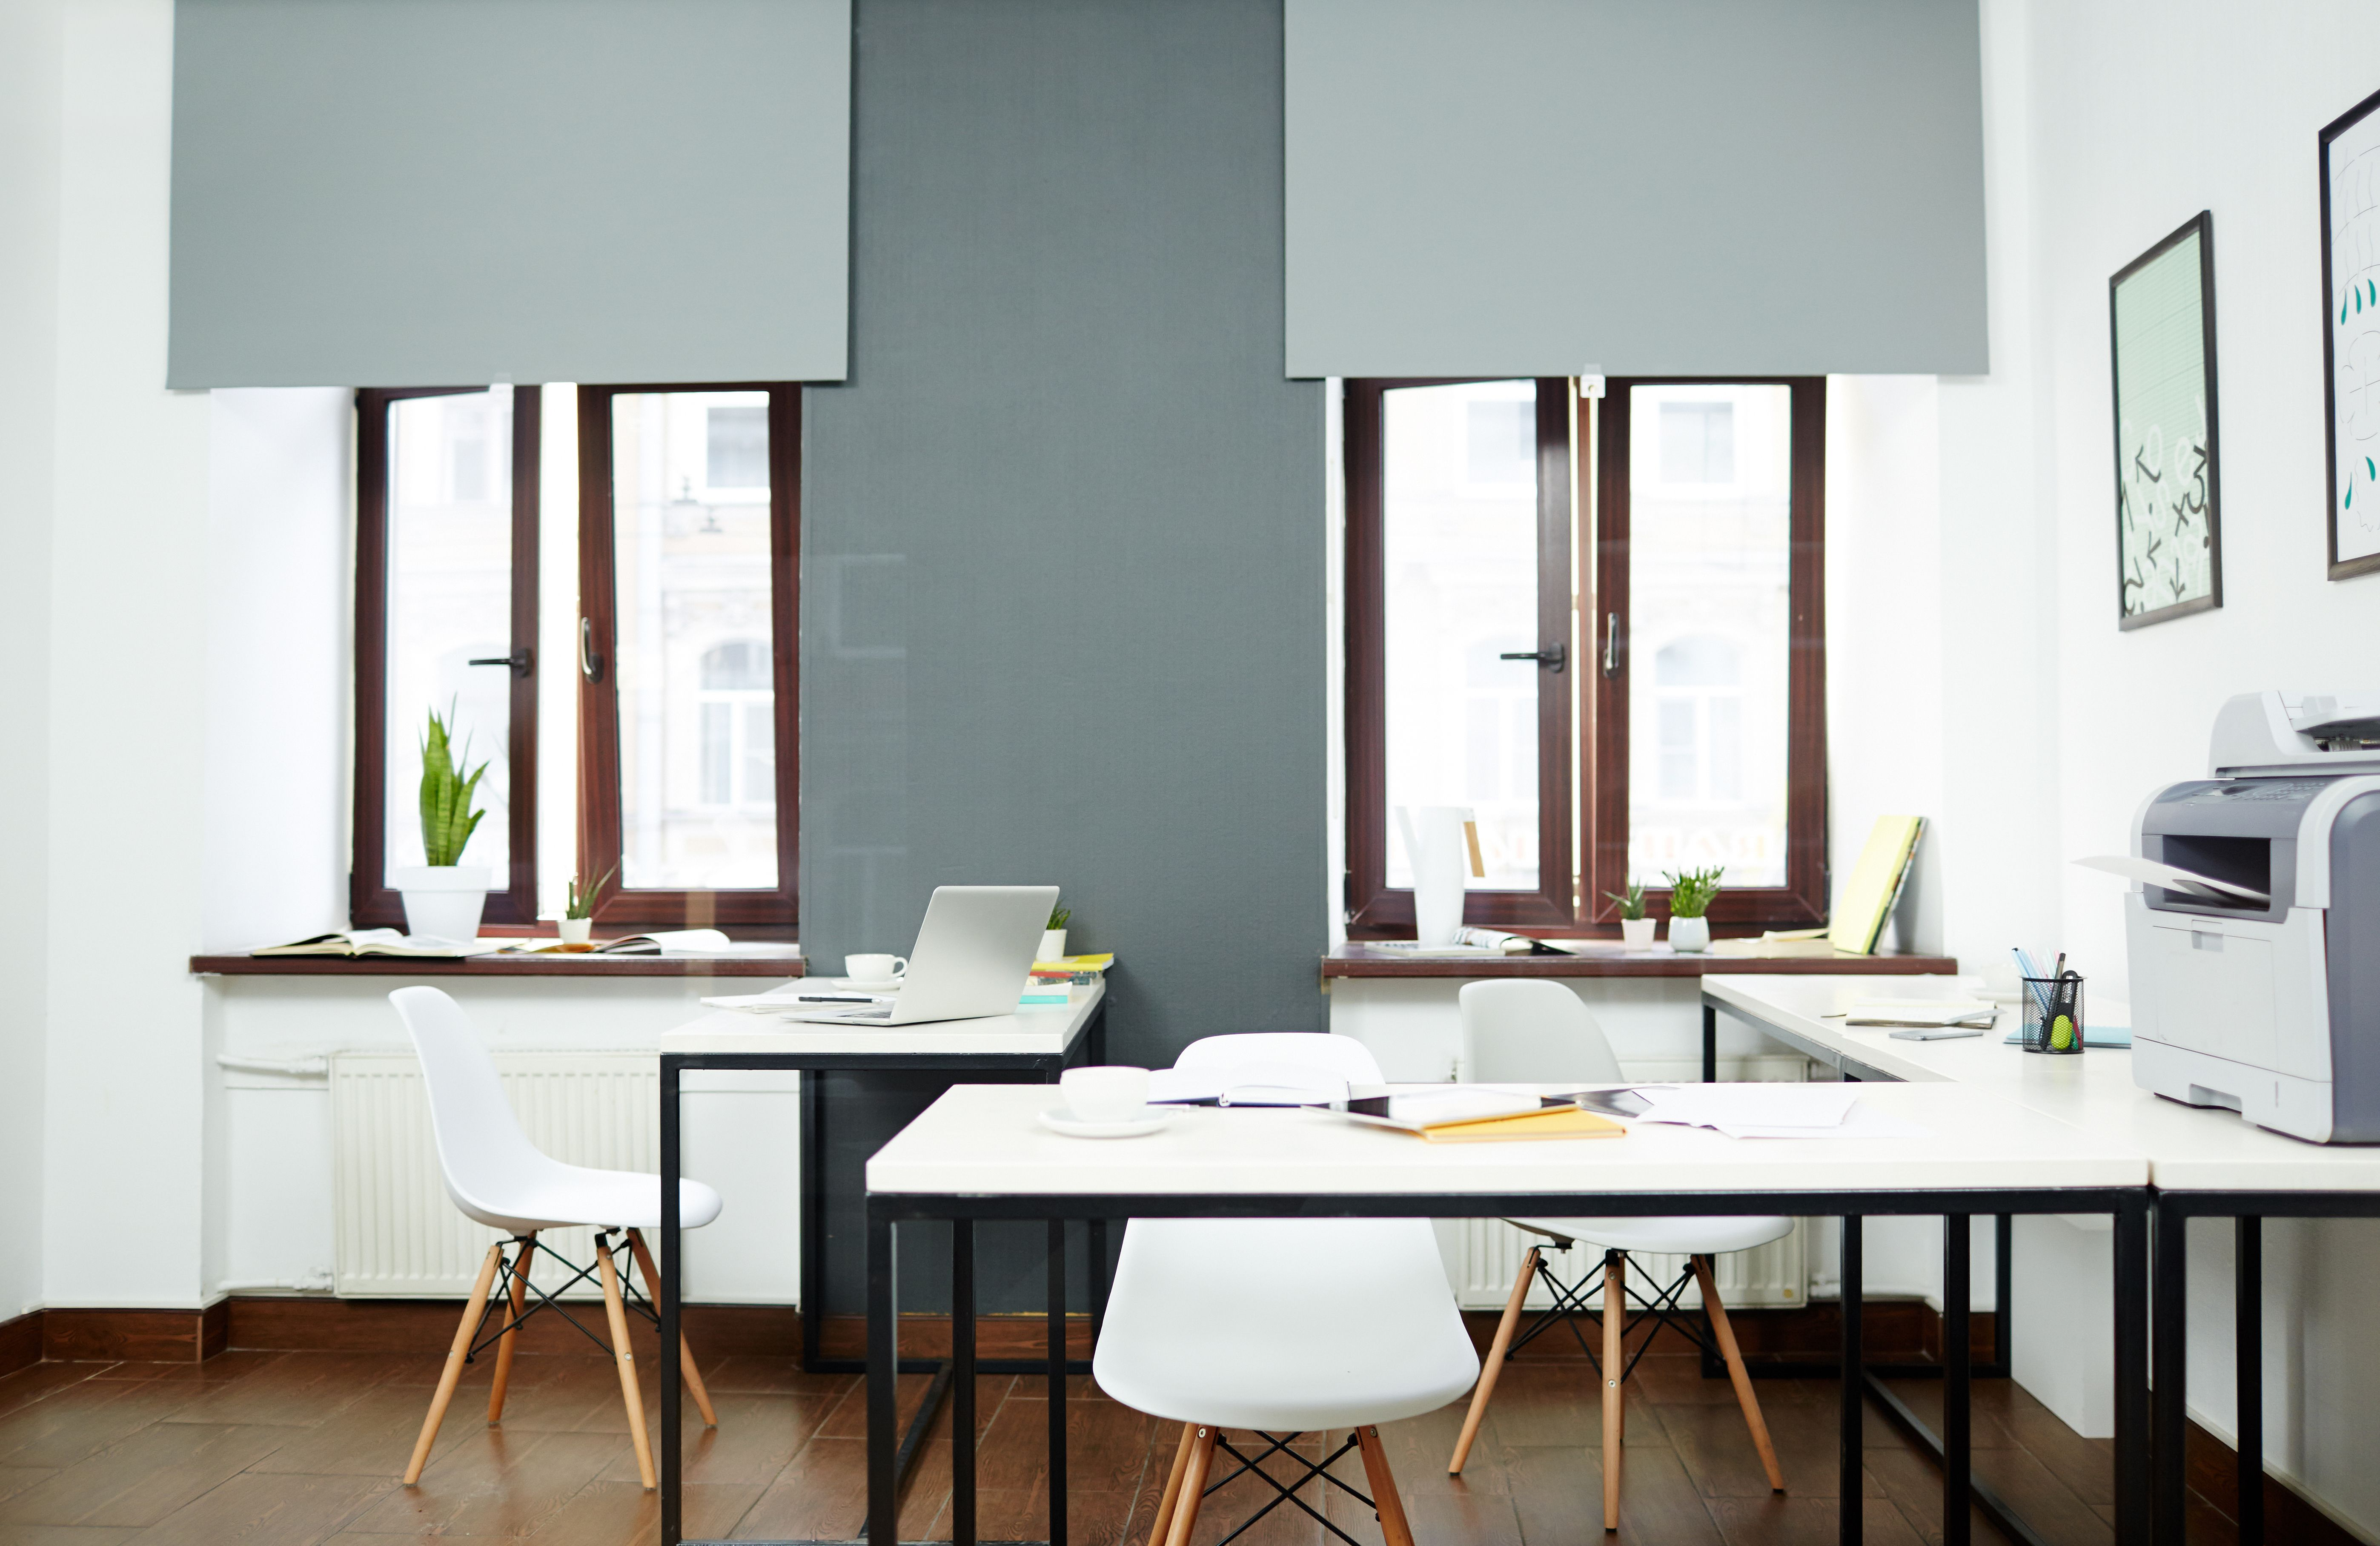 For Interior Designing Of Your Dream Office At Affordable Budget